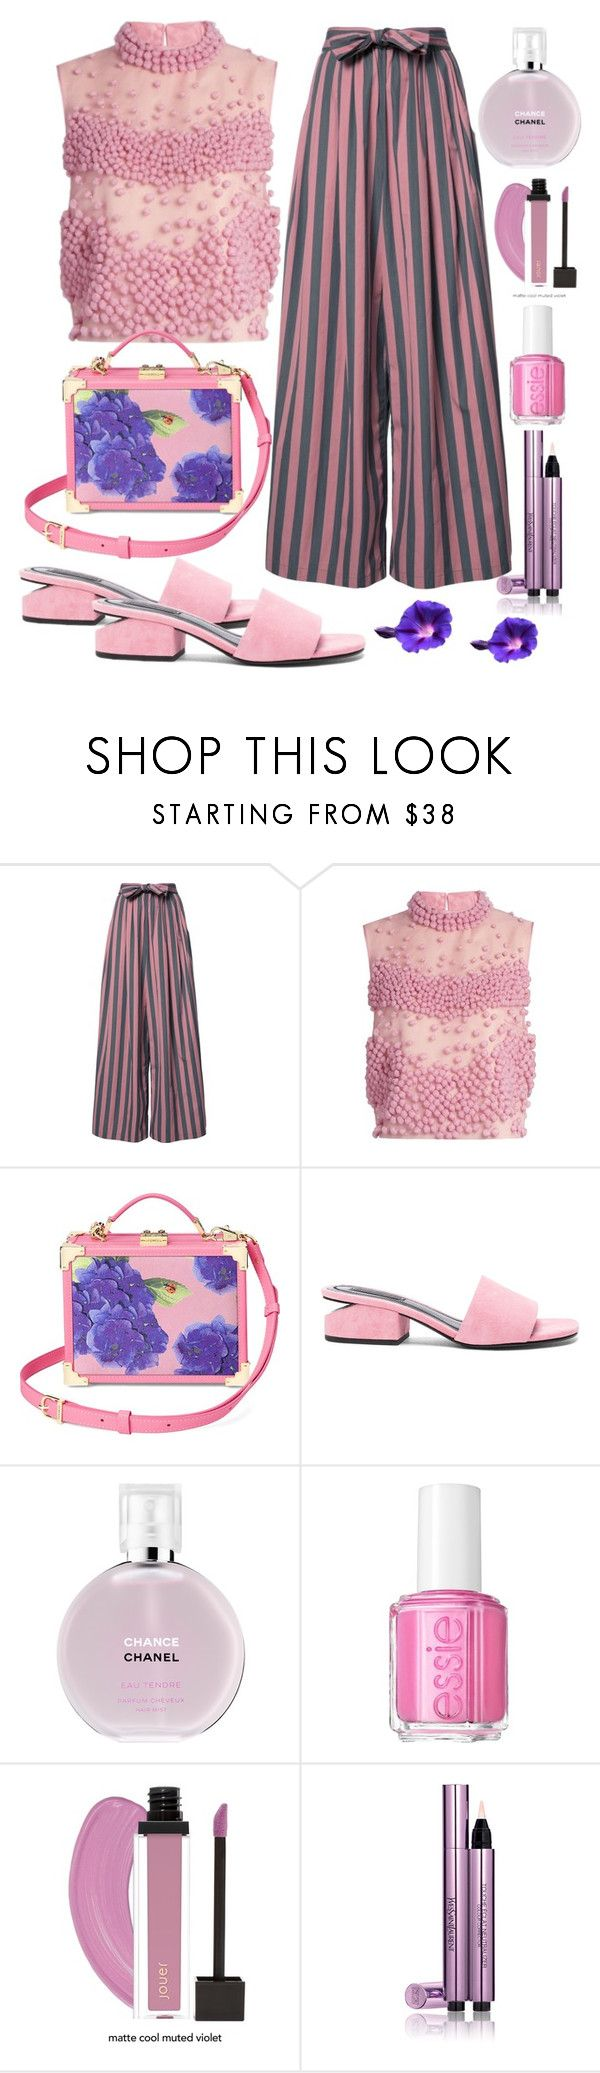 """""""Don't dream it's over"""" by xmoonagedaydreamx ❤ liked on Polyvore featuring Tome, Roksanda, Aspinal of London, Alexander Wang, Chanel, Essie, Yves Saint Laurent, Pink, purple and sweet"""